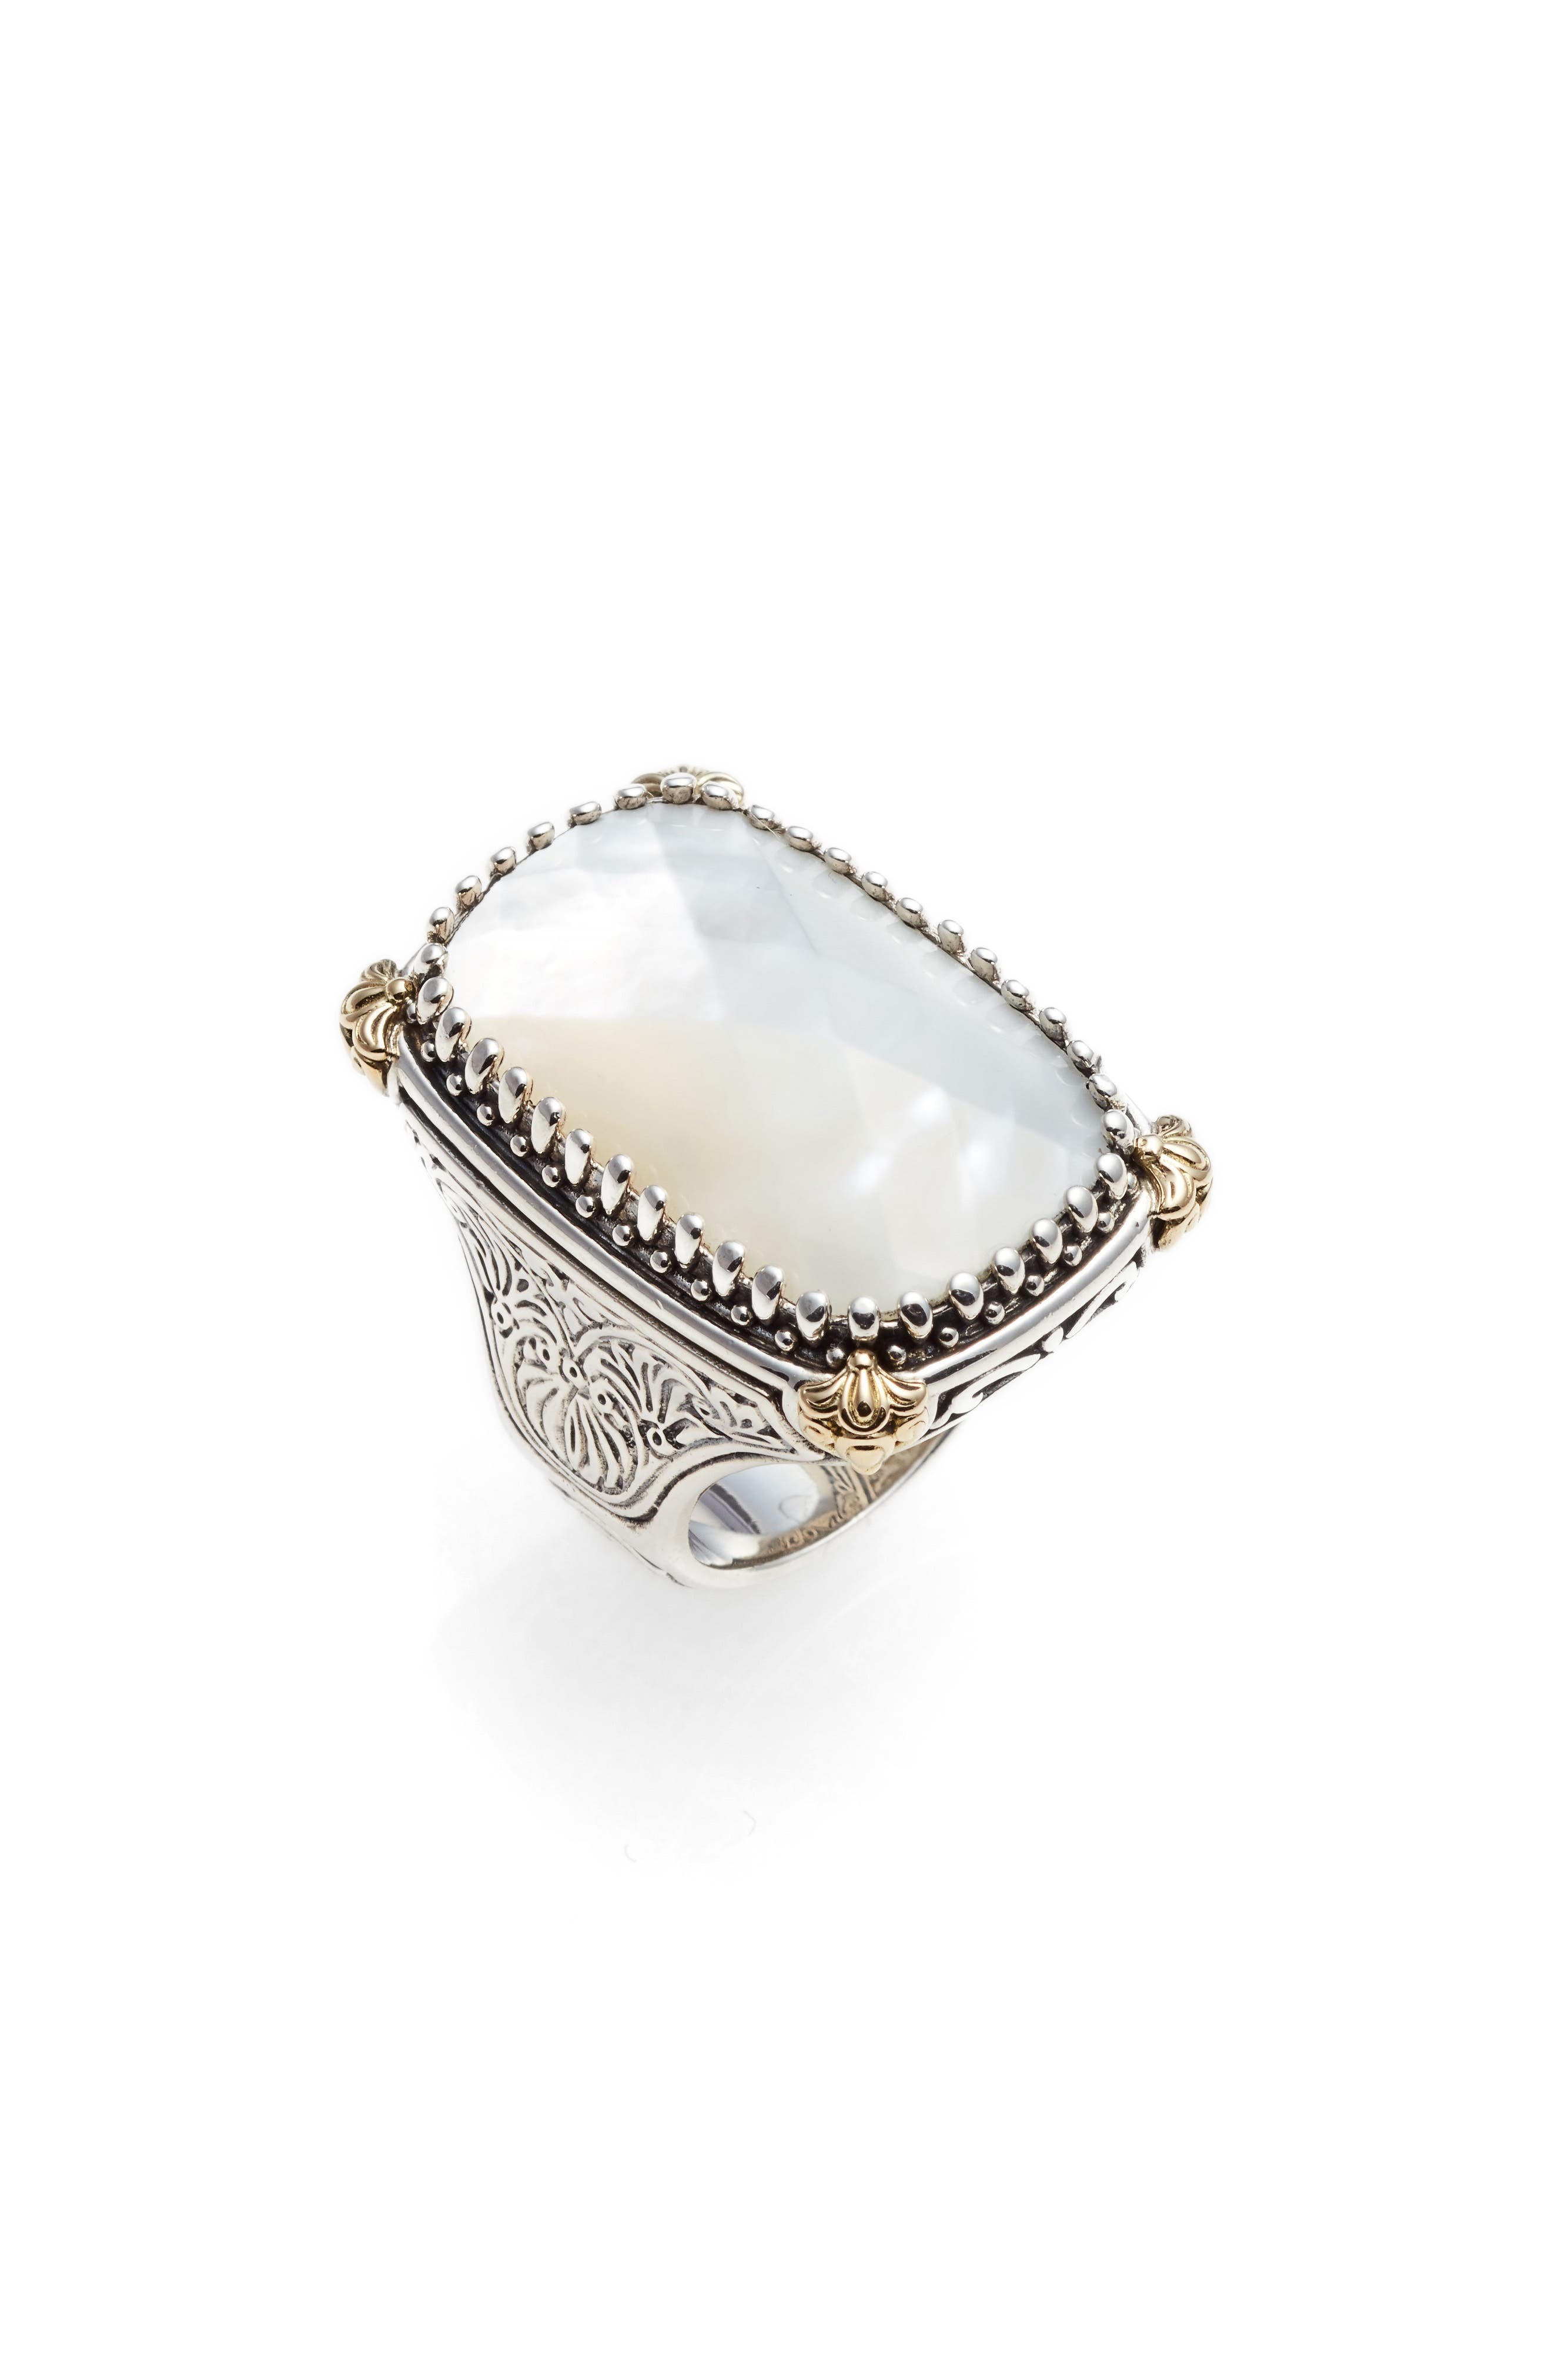 KONSTANTINO Selene Mother of Pearl Ring, Main, color, SILVER/ GOLD/ MOTHER OF PEARL